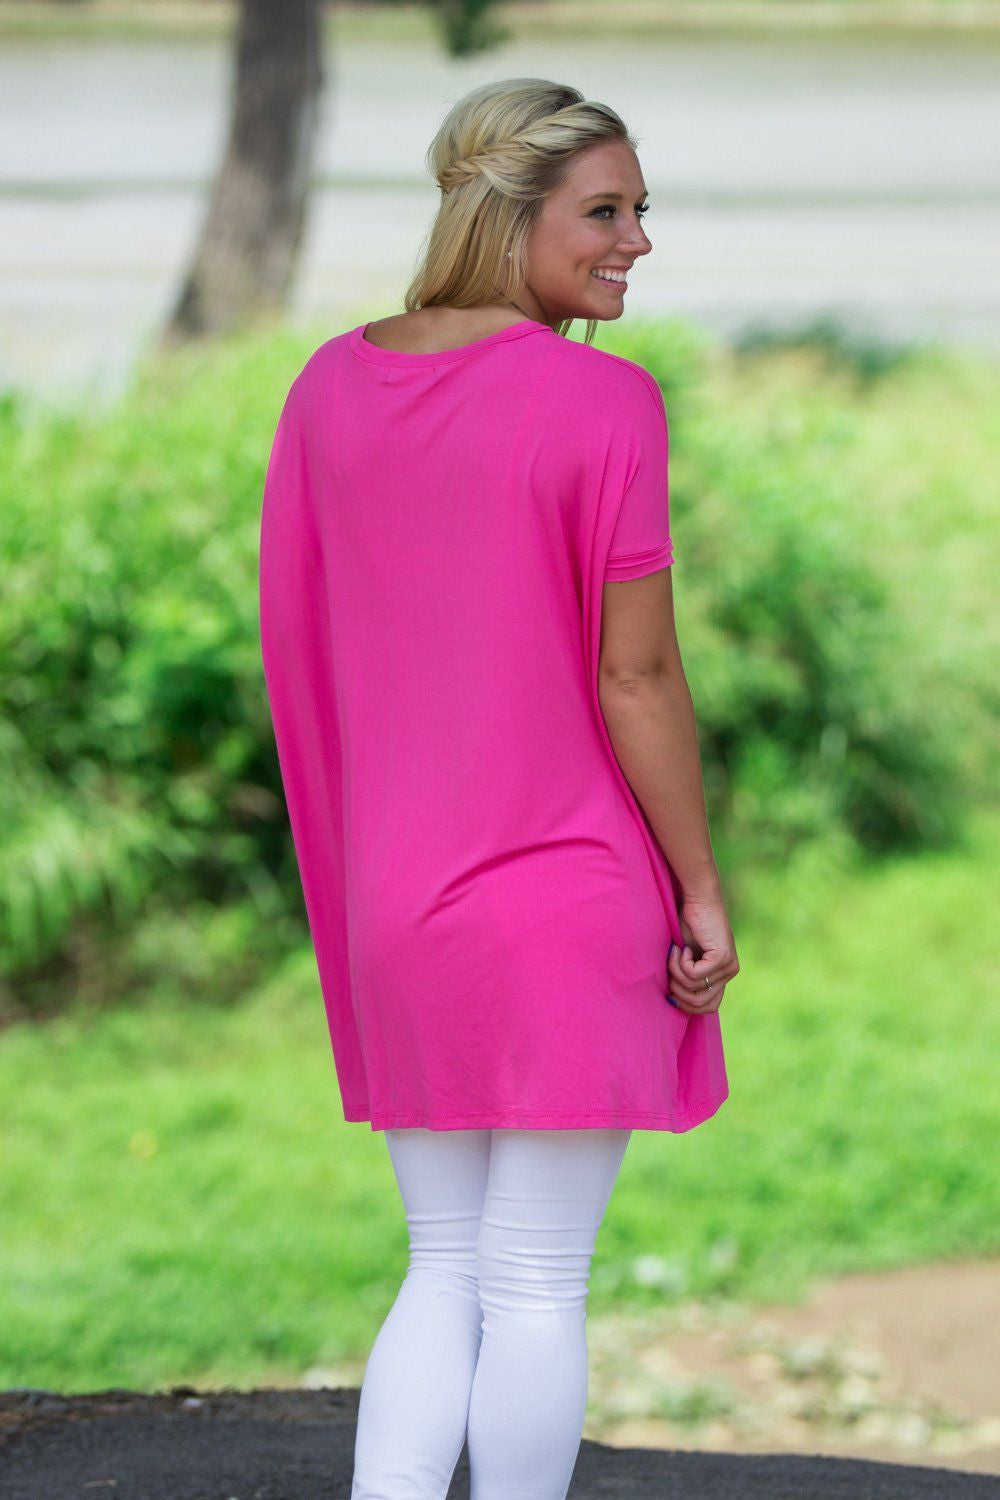 Short Sleeve V-Neck Piko Tunic - French Rose - Piko Clothing - 2